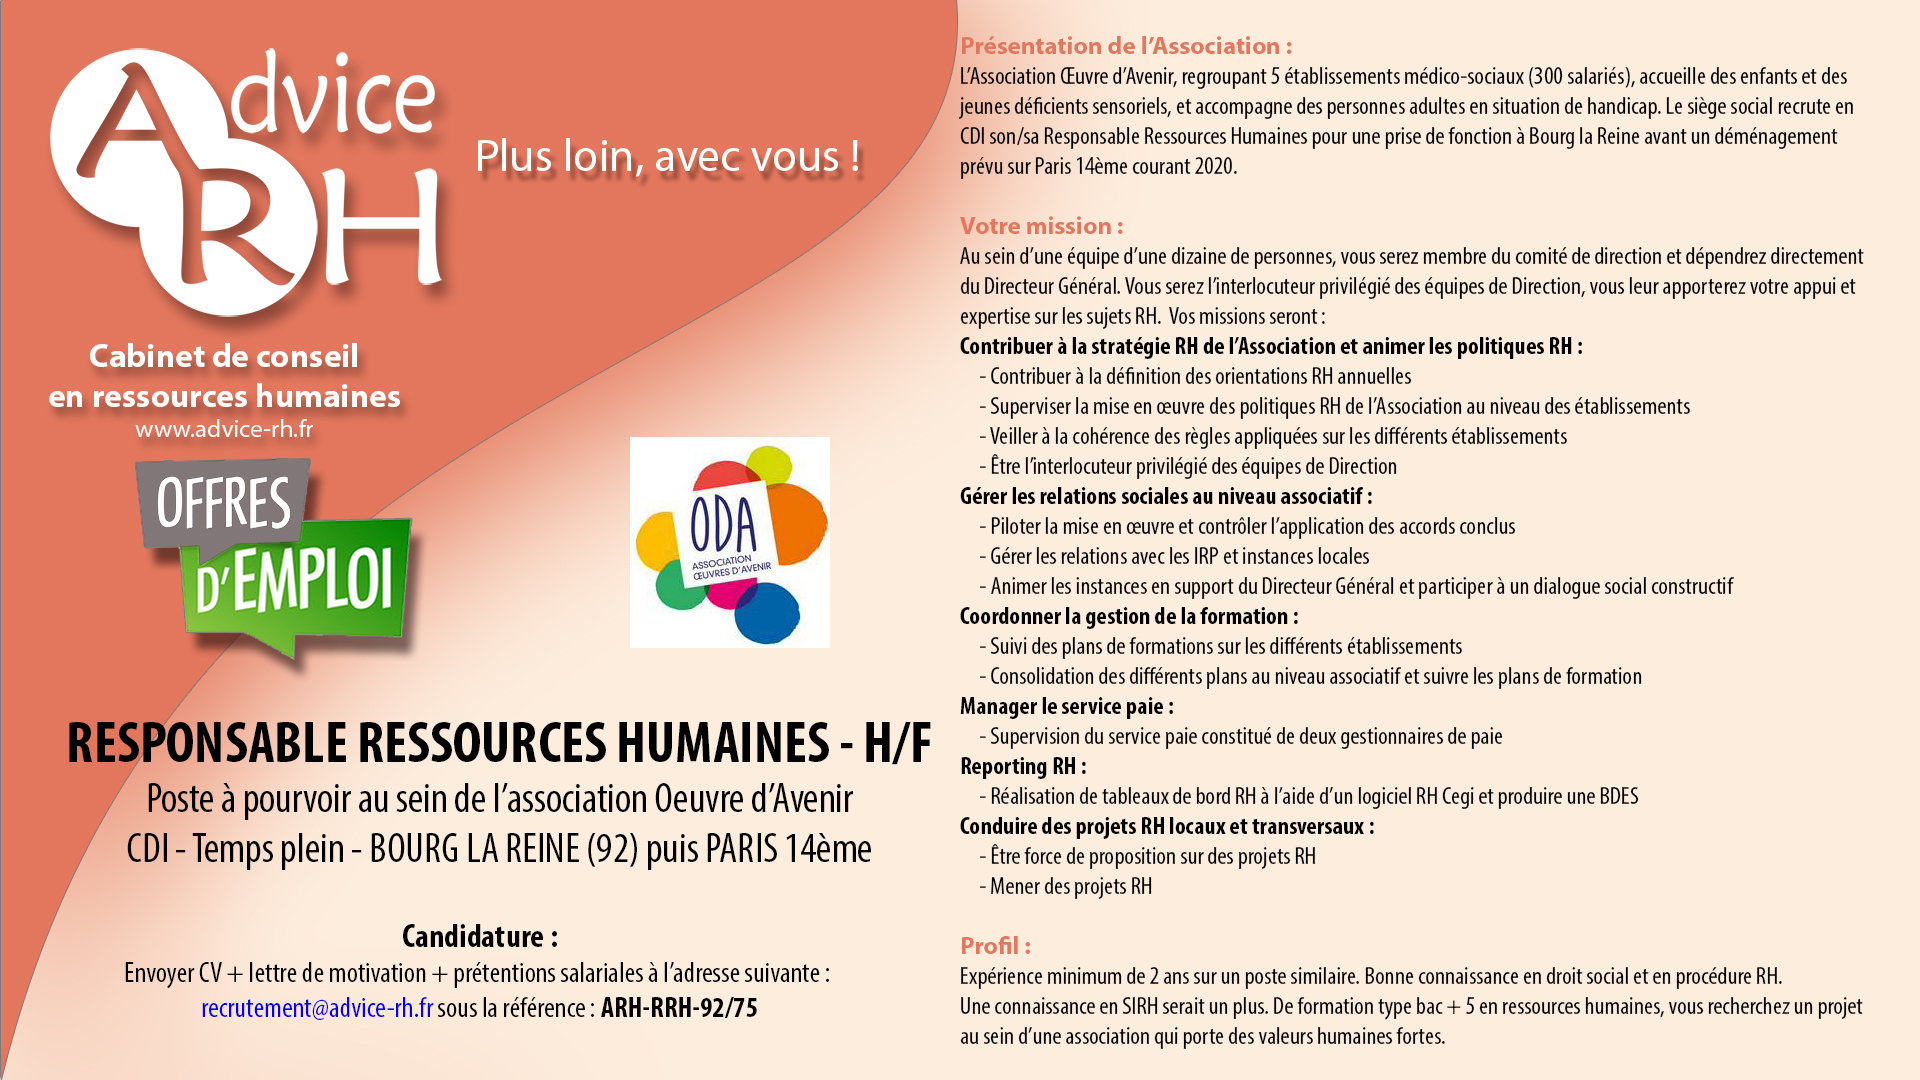 Advice RH Recrutement - Responsable Ressources Humaines H/F - CDI - Temps plein